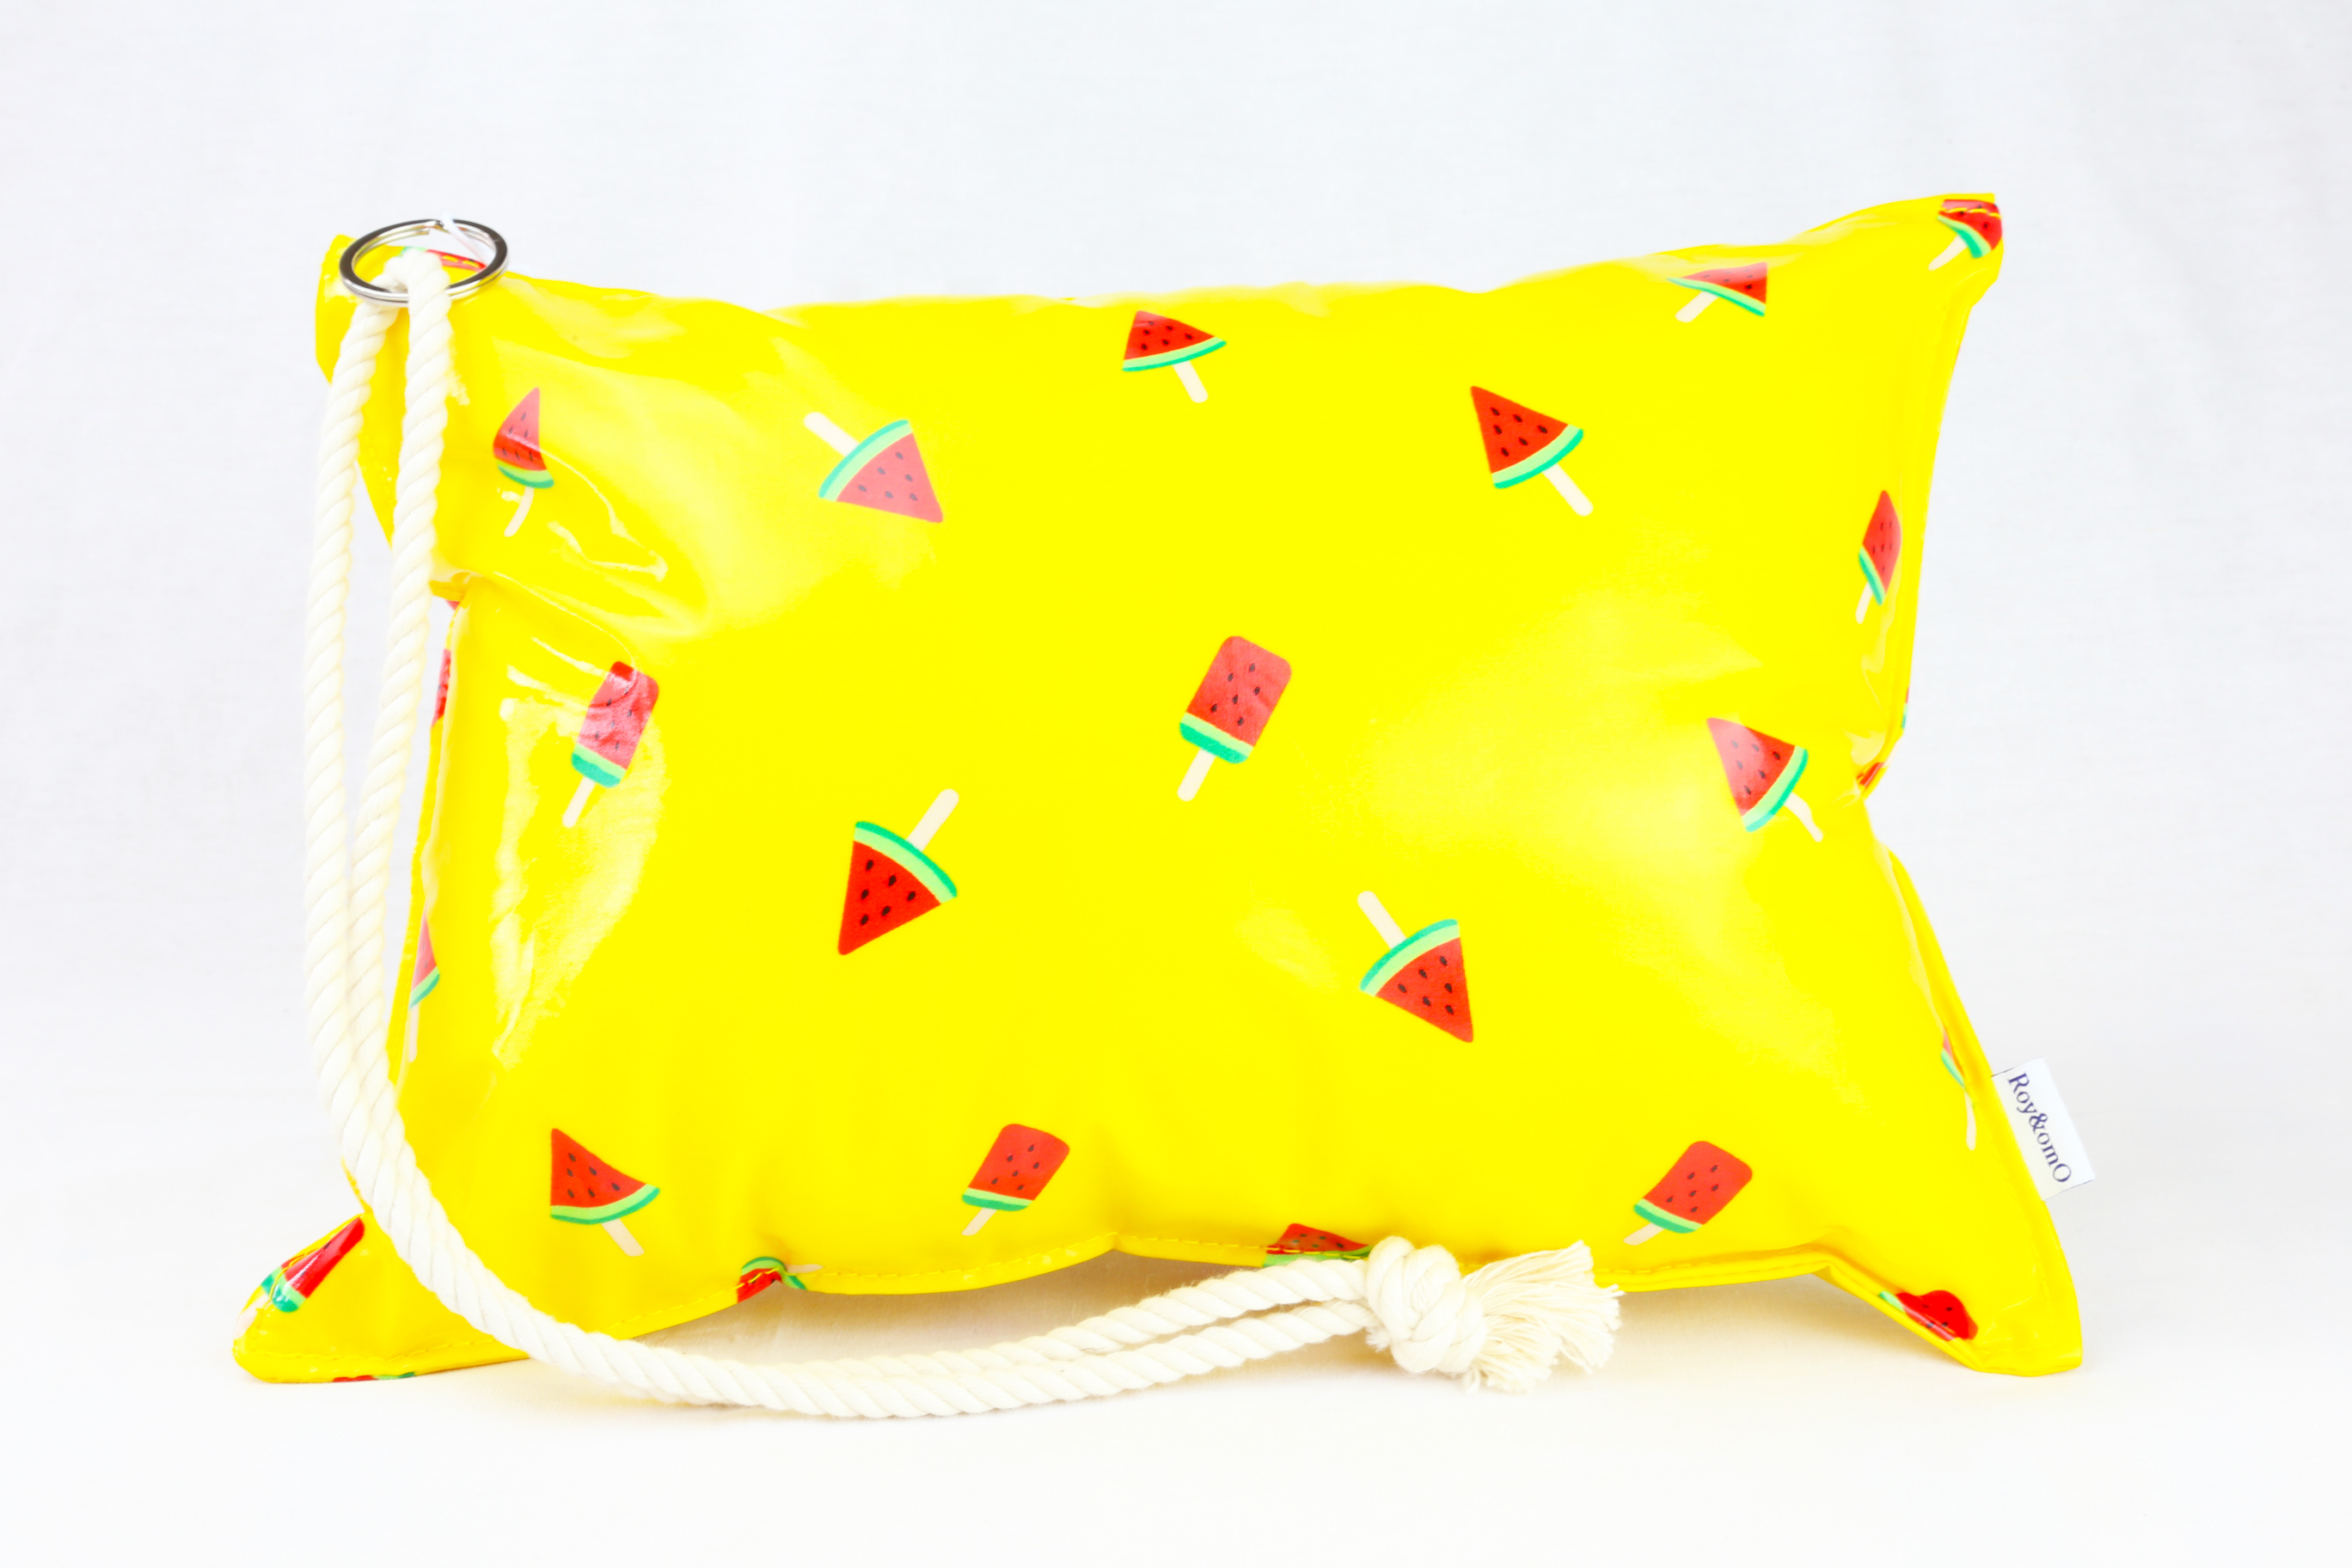 Pillow Bag (plumpillow purse)【Suika Candy】まくら×ポーチ アウトドア